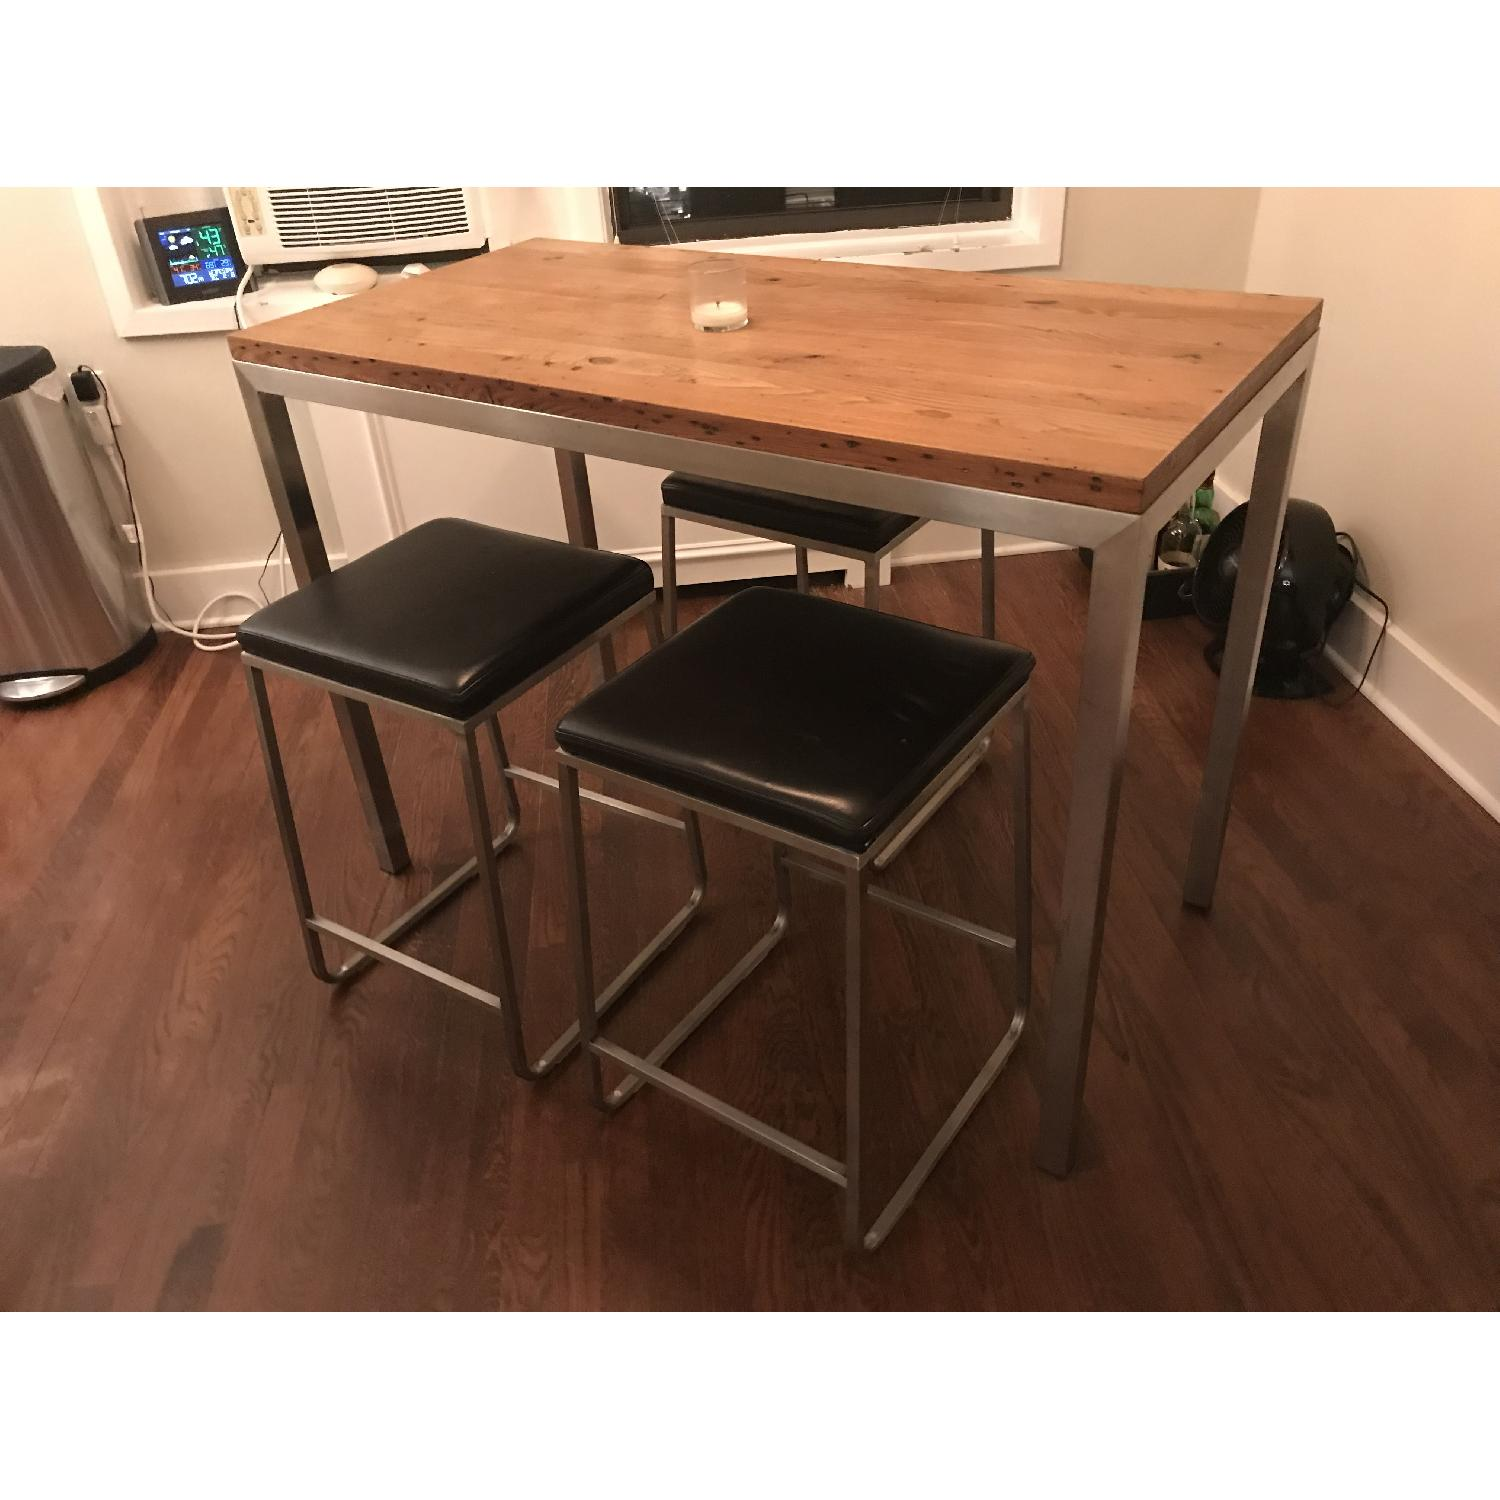 Room & Board Counter Height Dining Table w/ 3 Stools-0